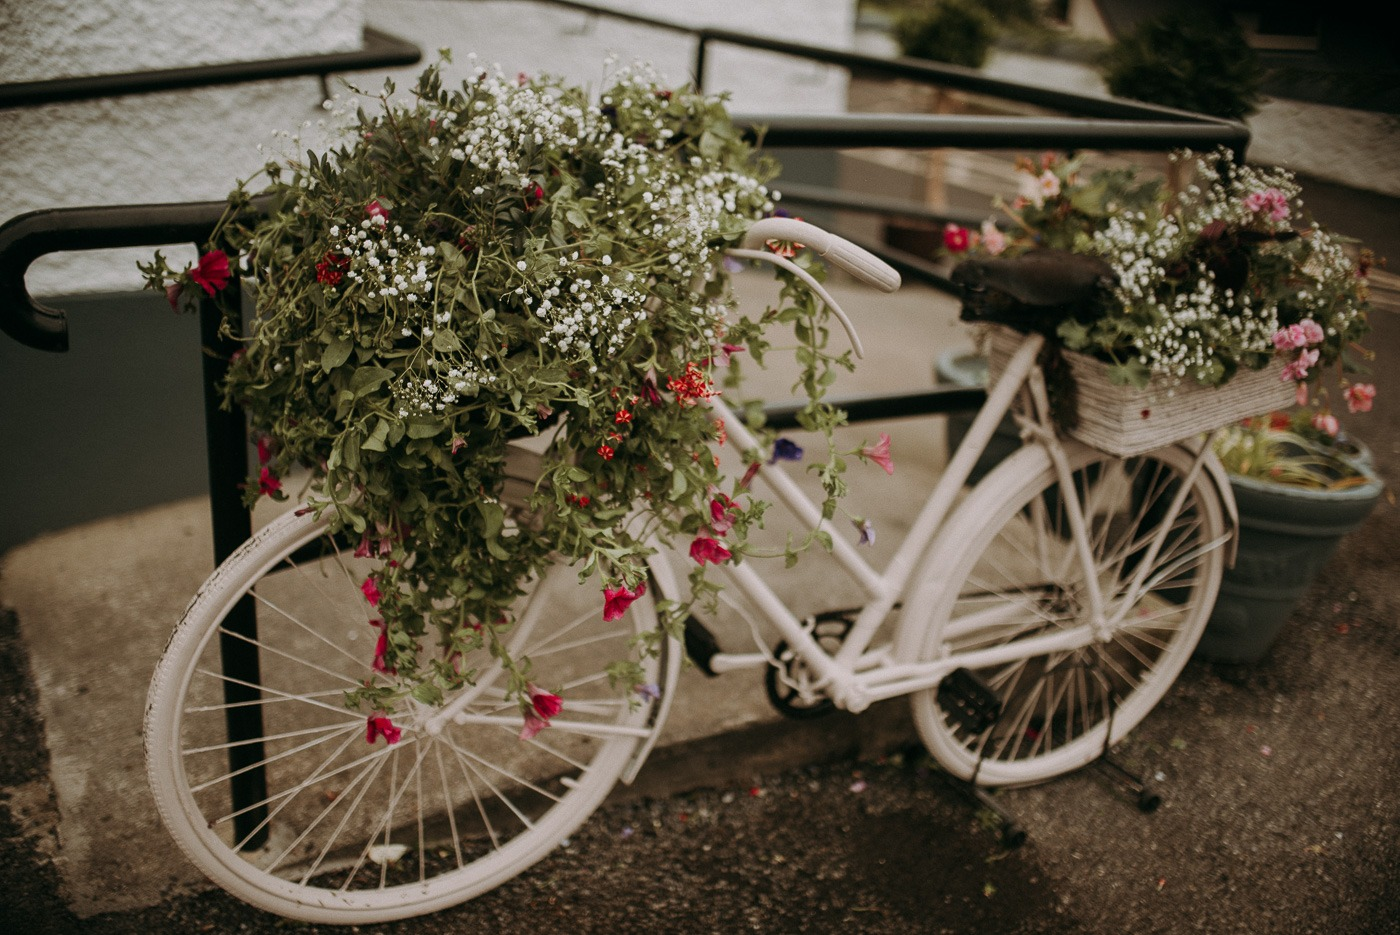 A bicycle parked in front of a flower